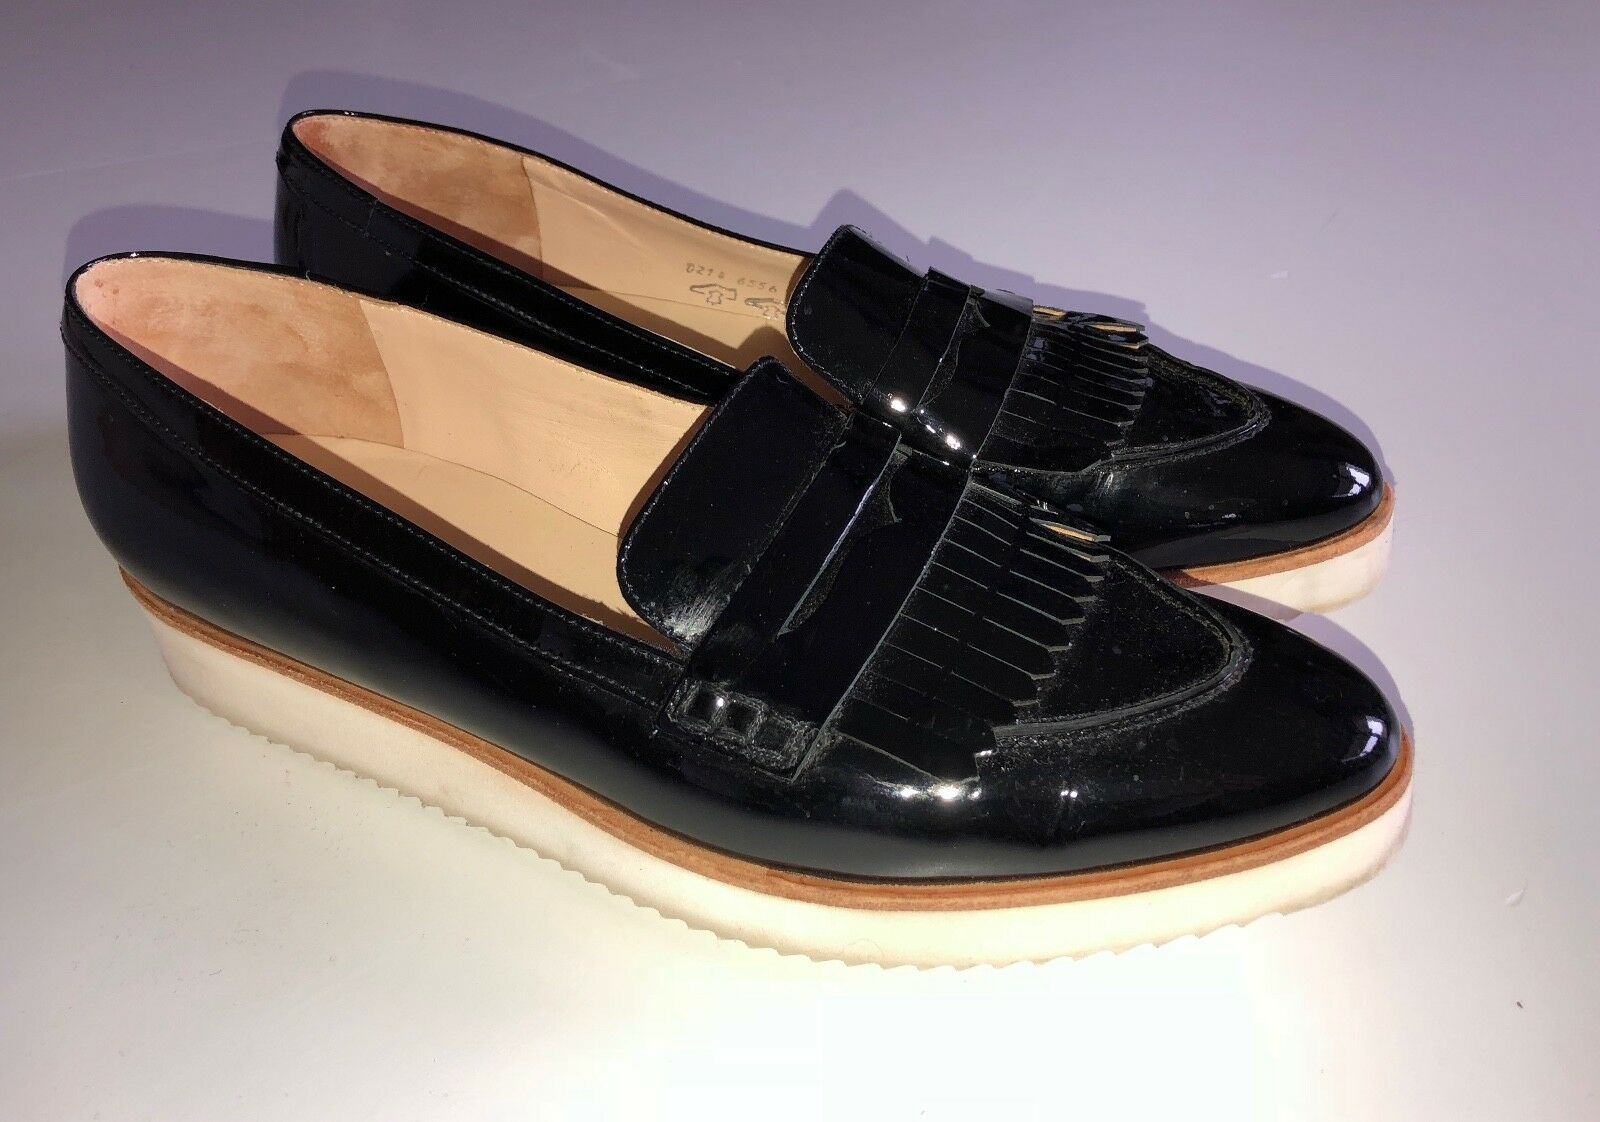 ❤ ❤ Högl Scarpe loafer 7 slipper vernice nero mis. 7 loafer 41 ❤ a67463